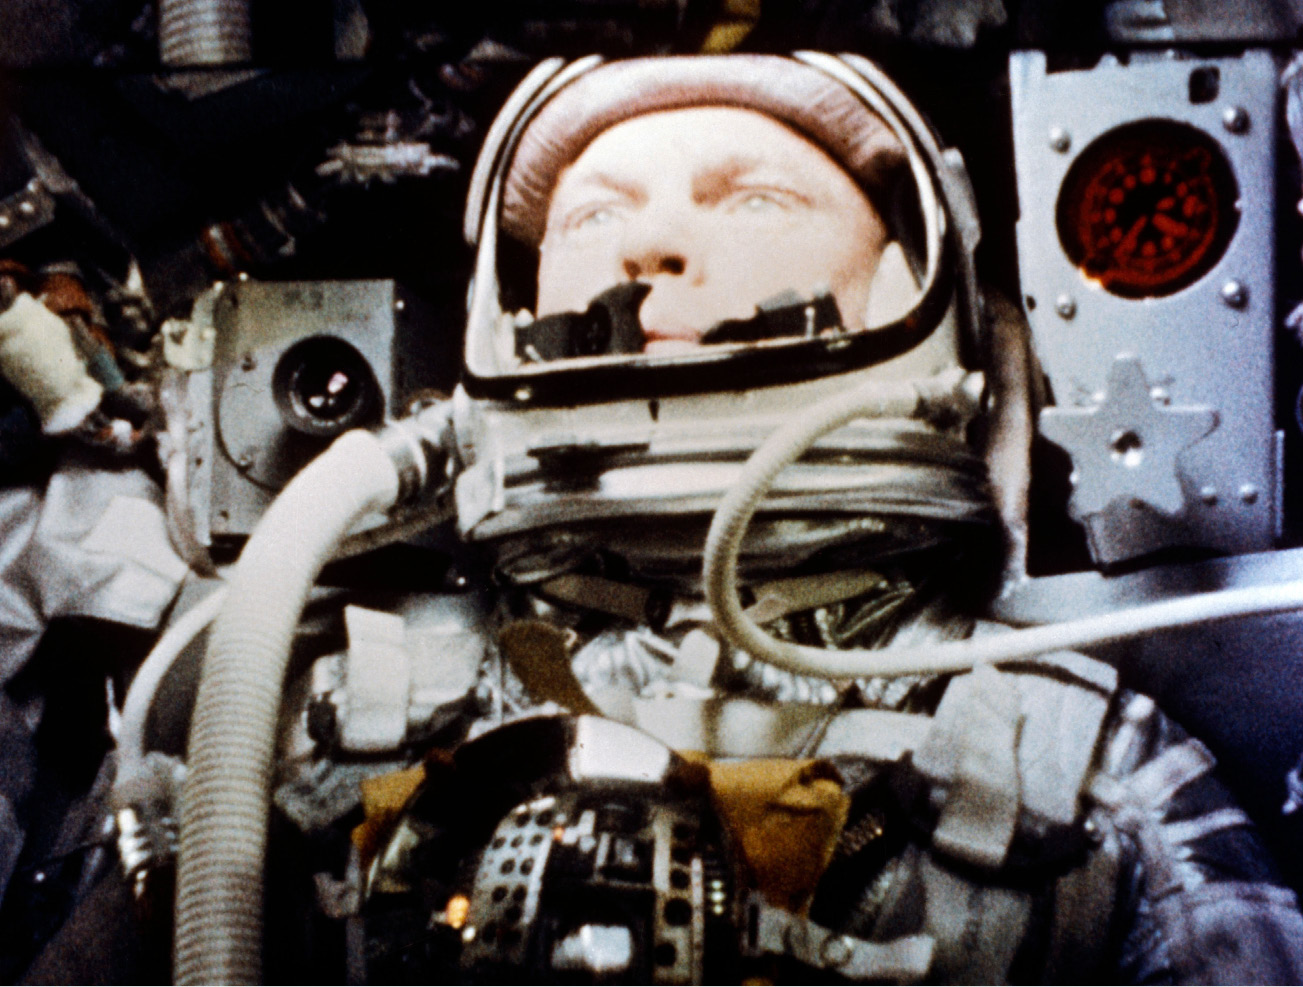 In this Feb. 20, 1962, photo, astronaut John Glenn pilots the Friendship 7 Mercury spacecraft during his flight as the first American to orbit the Earth.| NASA via AP